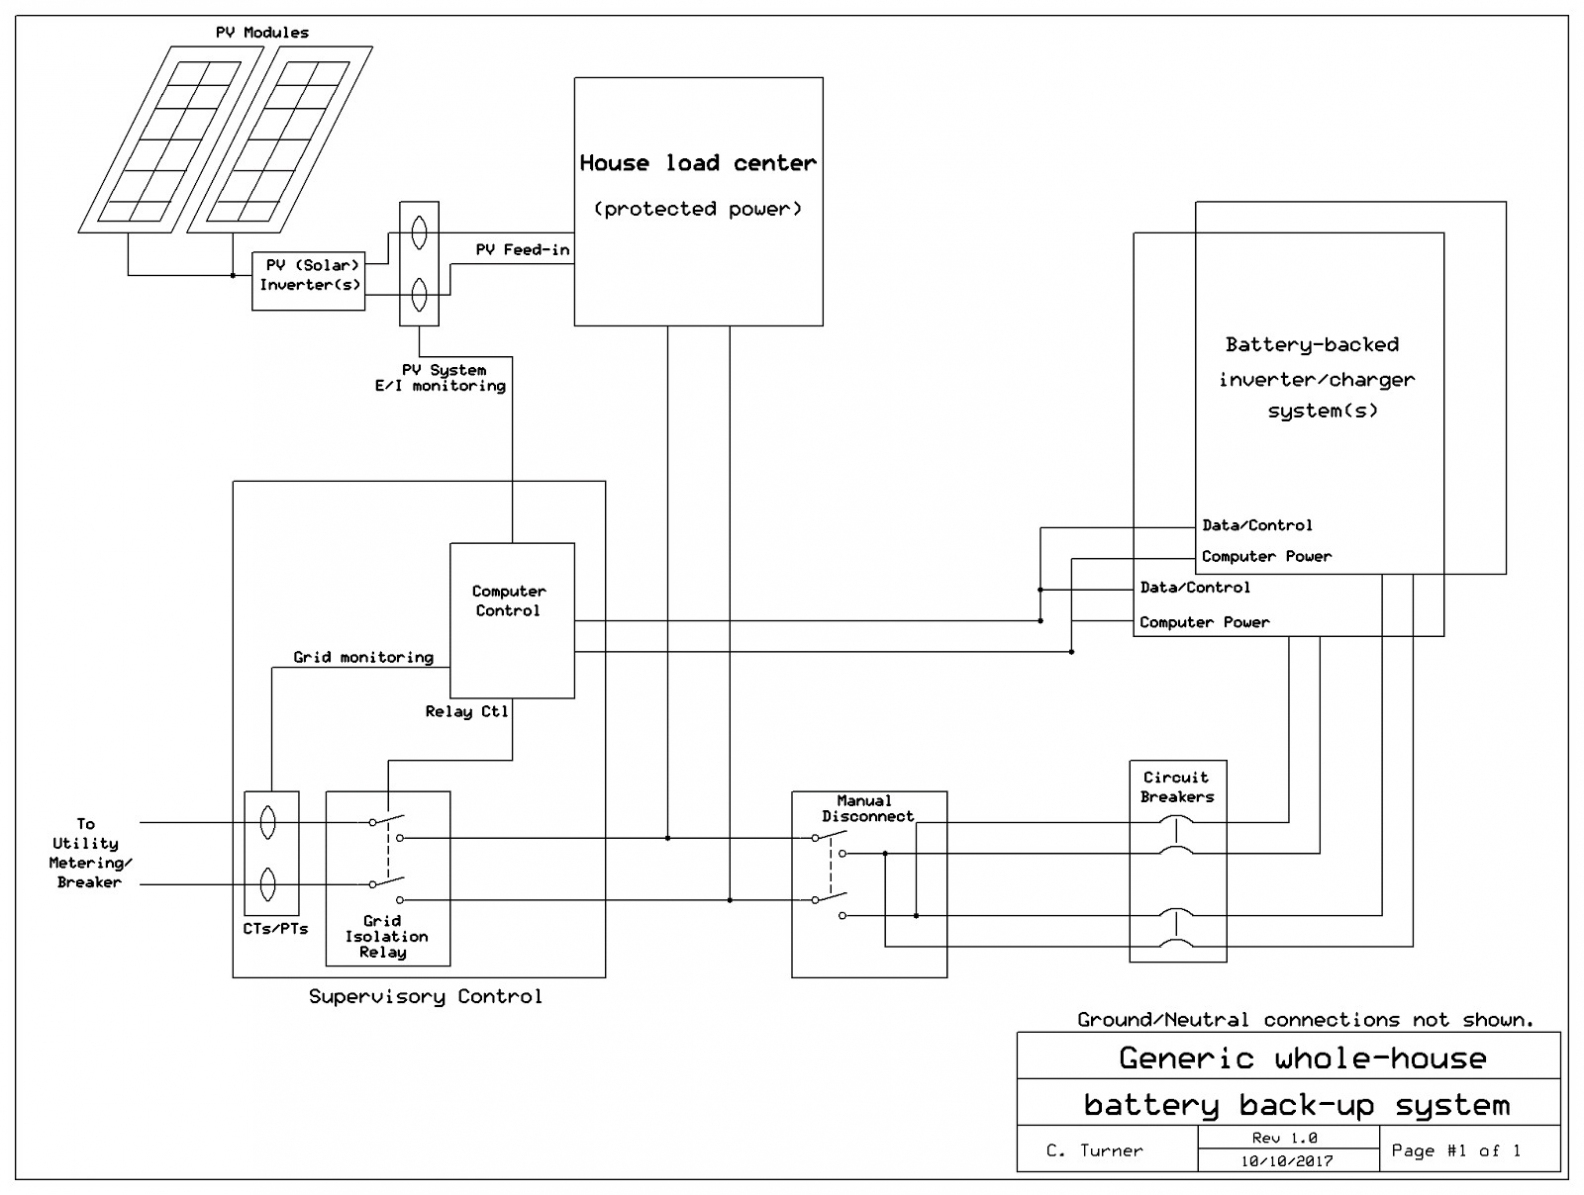 Rv Converter Charger Wiring Diagram — Manicpixi : Rv Converter - Rv Inverter Charger Wiring Diagram